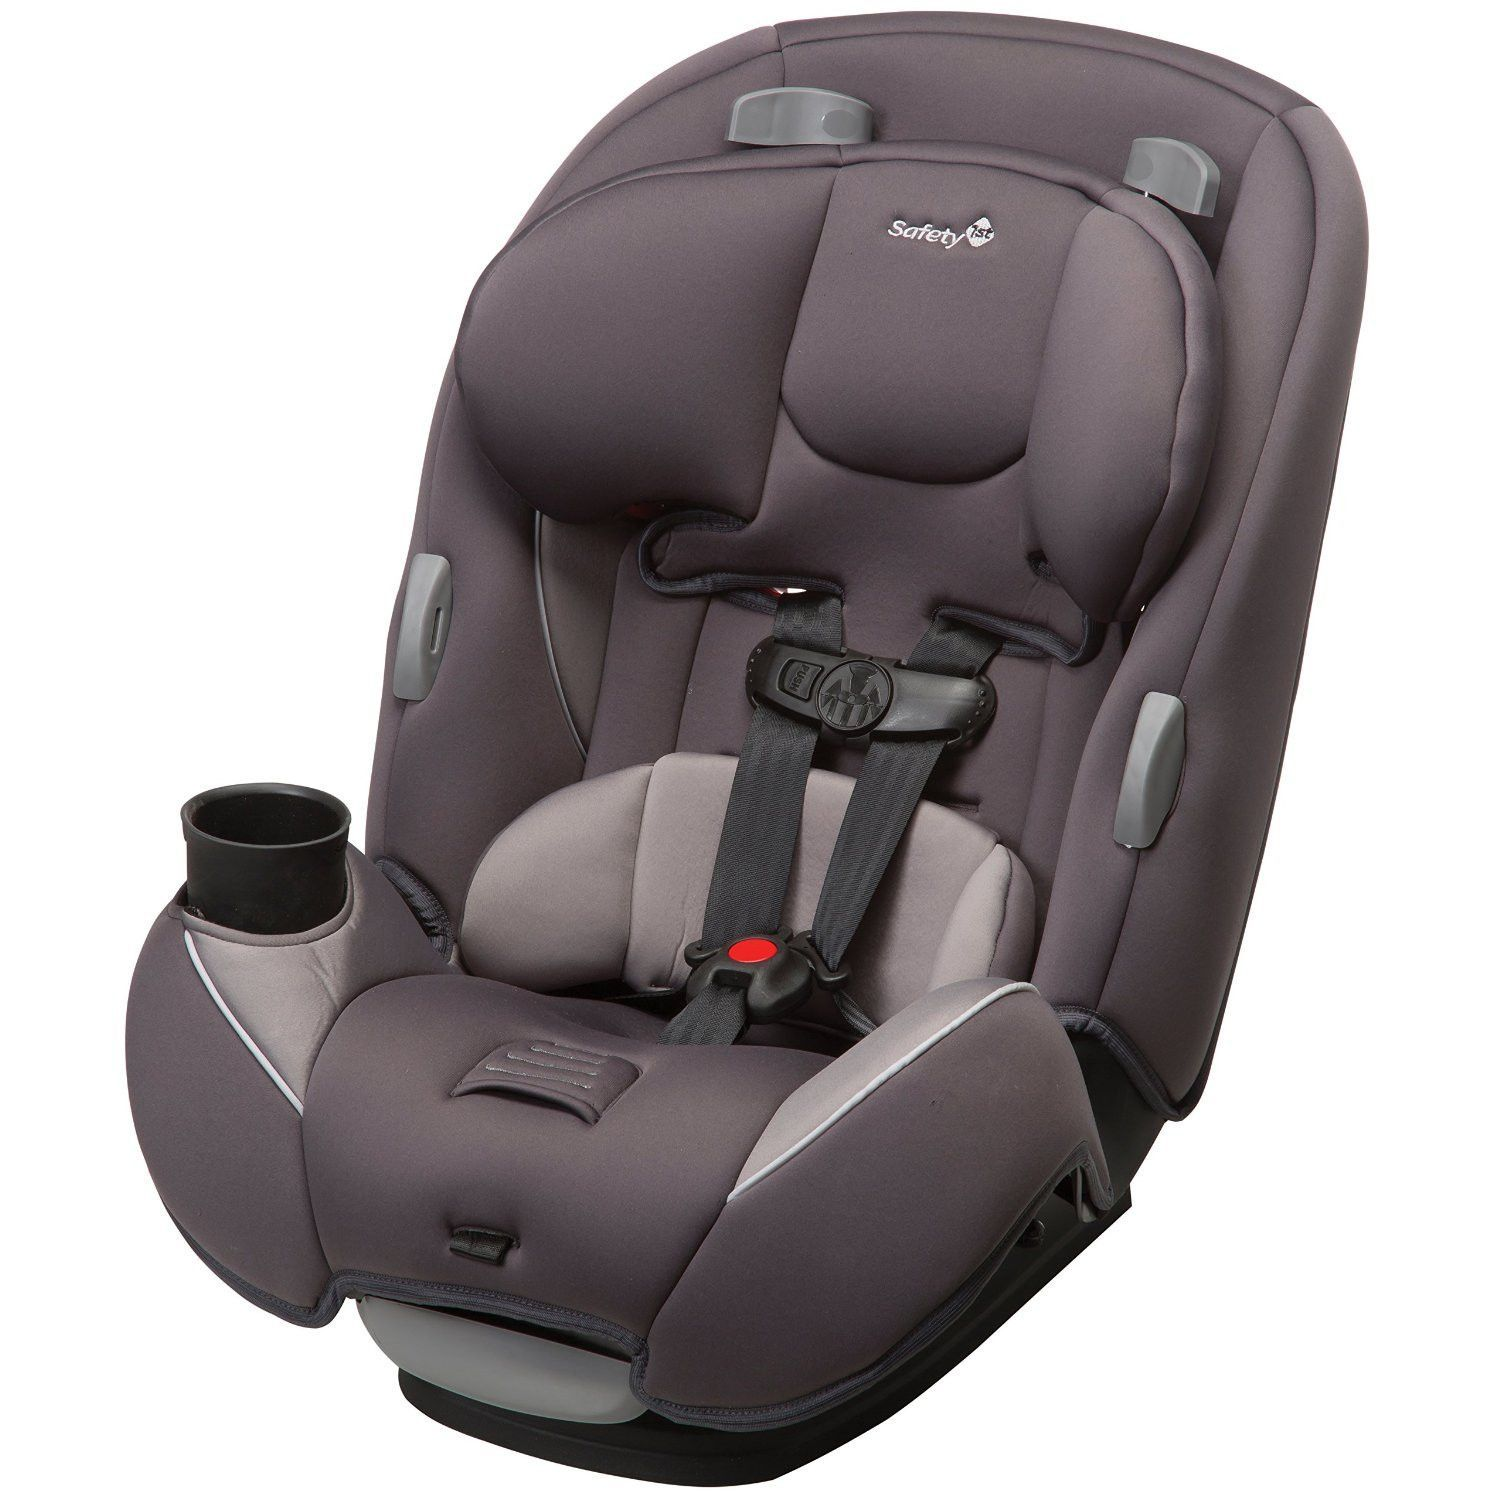 Safety 1st Continuum 3 in 1 Convertible Infant Car Seat - Windchime